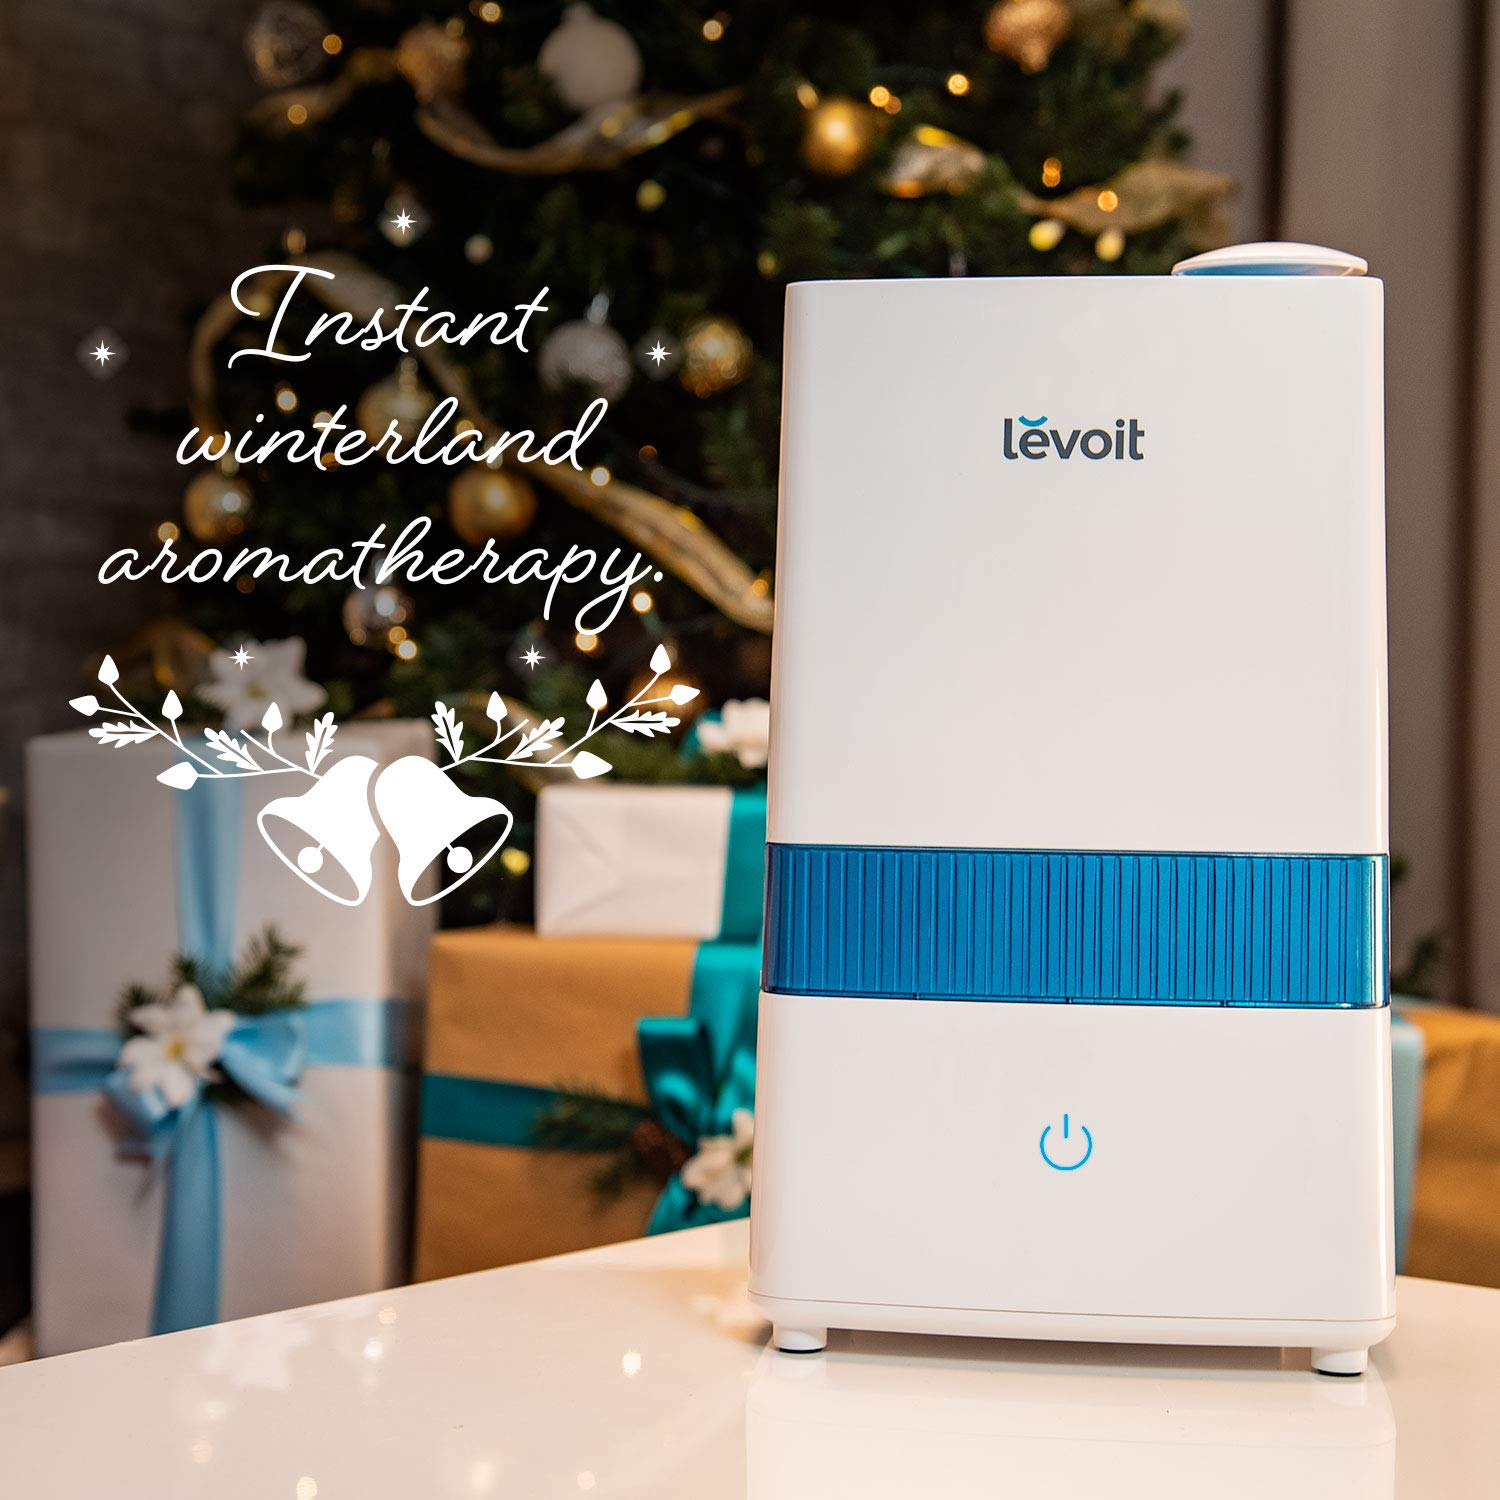 LEVOIT Cool Mist Humidifier, 4.5L Ultrasonic Humidifiers for Bedroom and Babies, Large-Capacity Vaporizer for Large Room, Whisper-Quiet, Auto Shutoff, Lasts up to 36 Hours, 2-Year Warranty